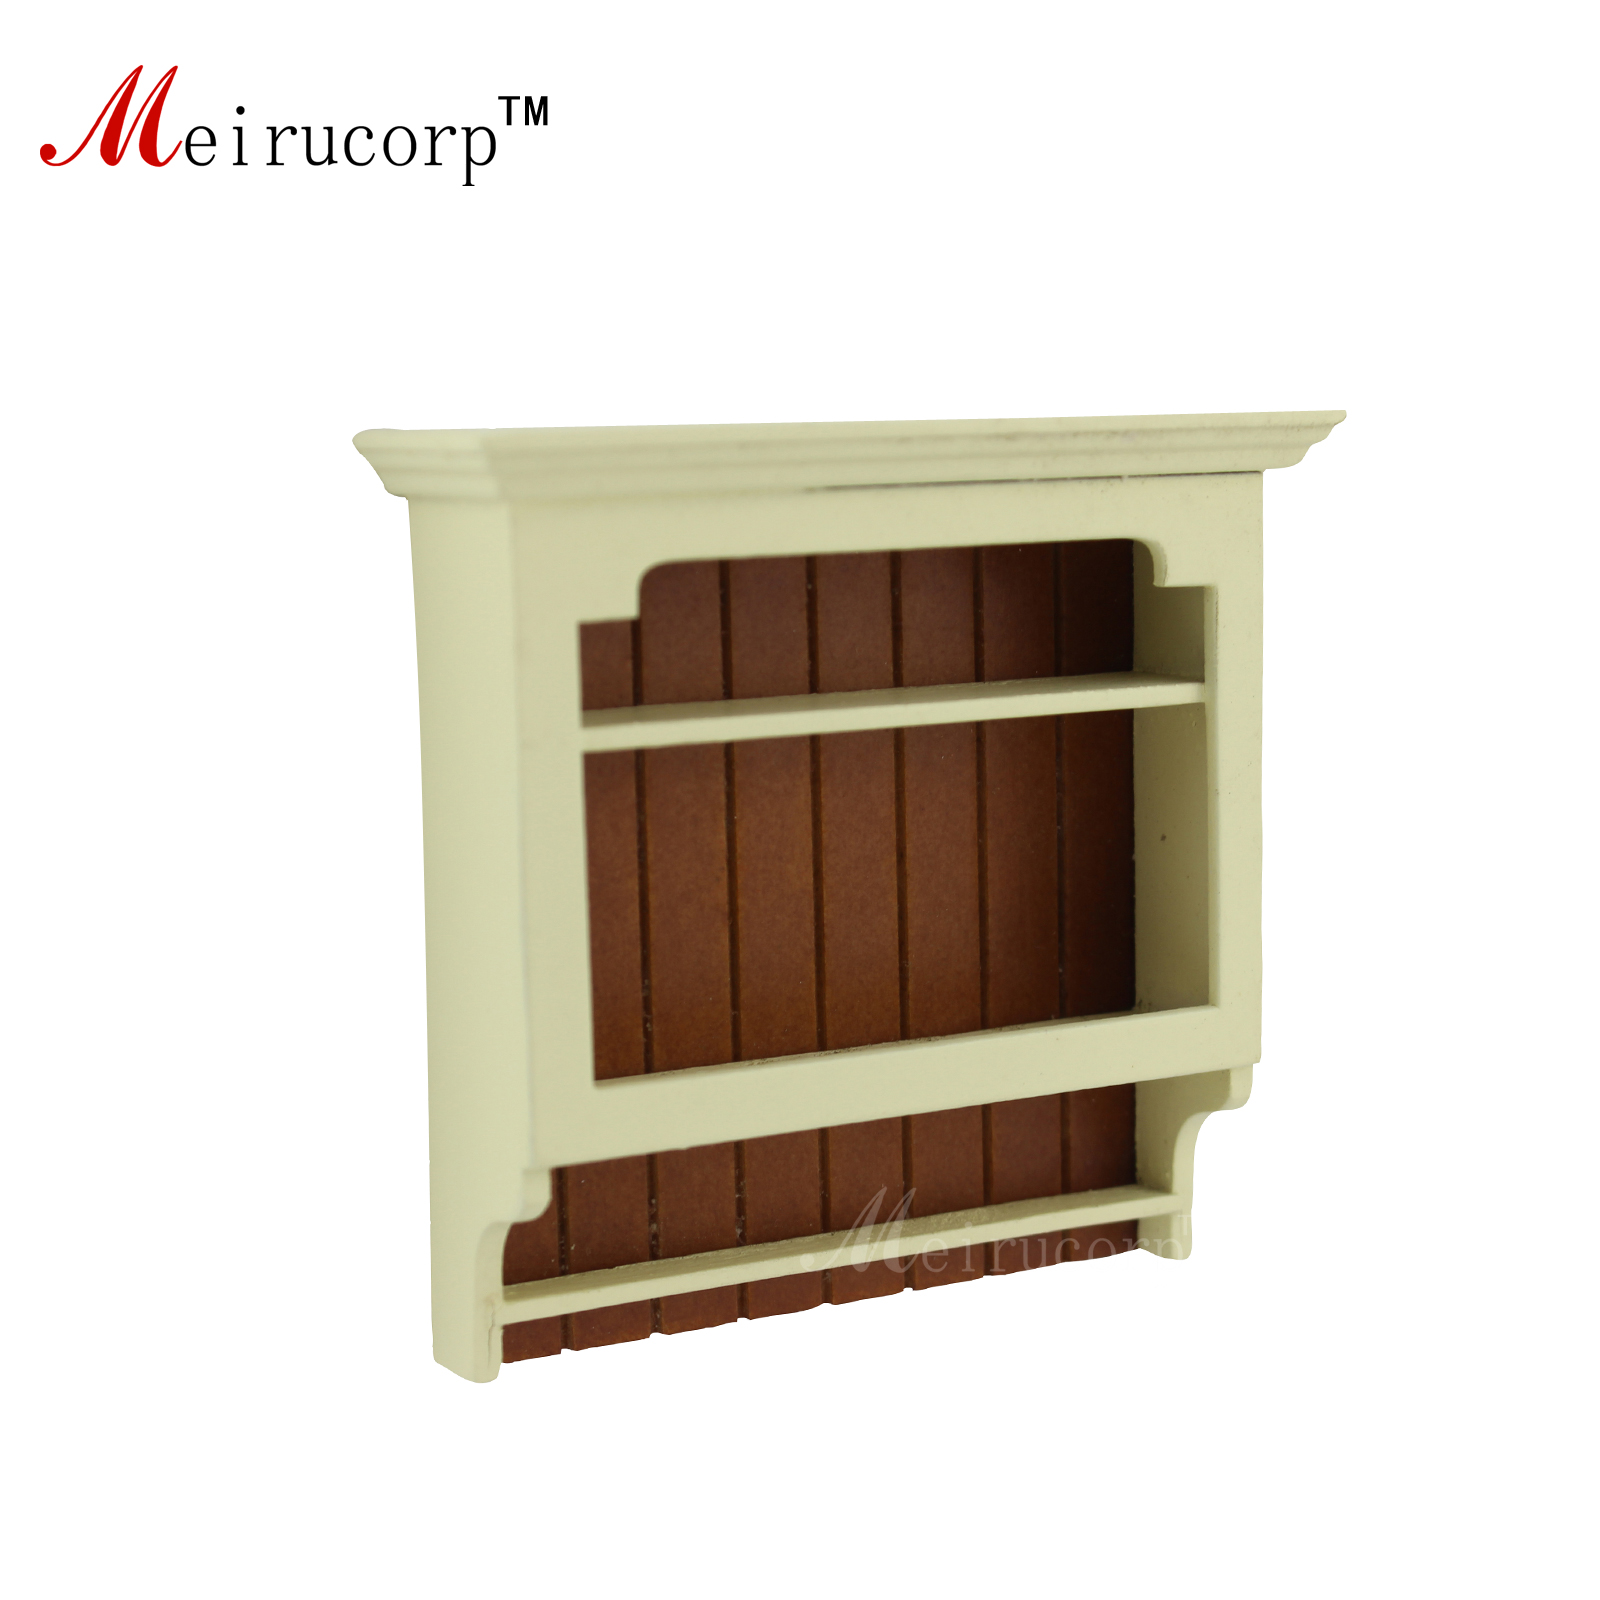 Dollhouse 1:12 scale Miniature furniture Wall mounted Shelve 10803